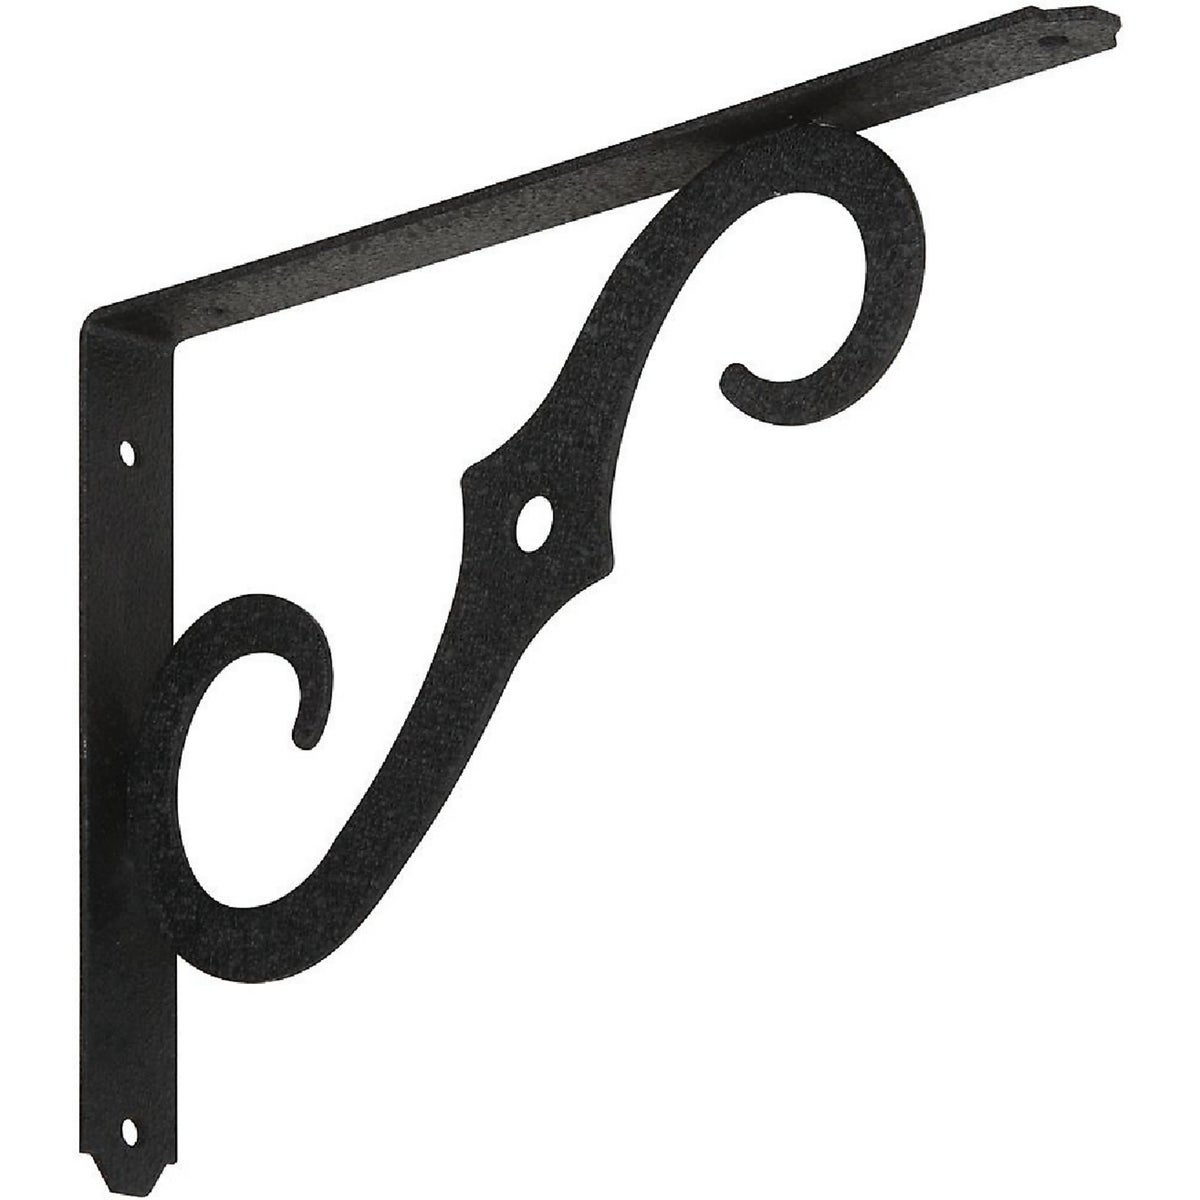 10X7 BLK ORN BRACKET - N229450 by National Mfg Co